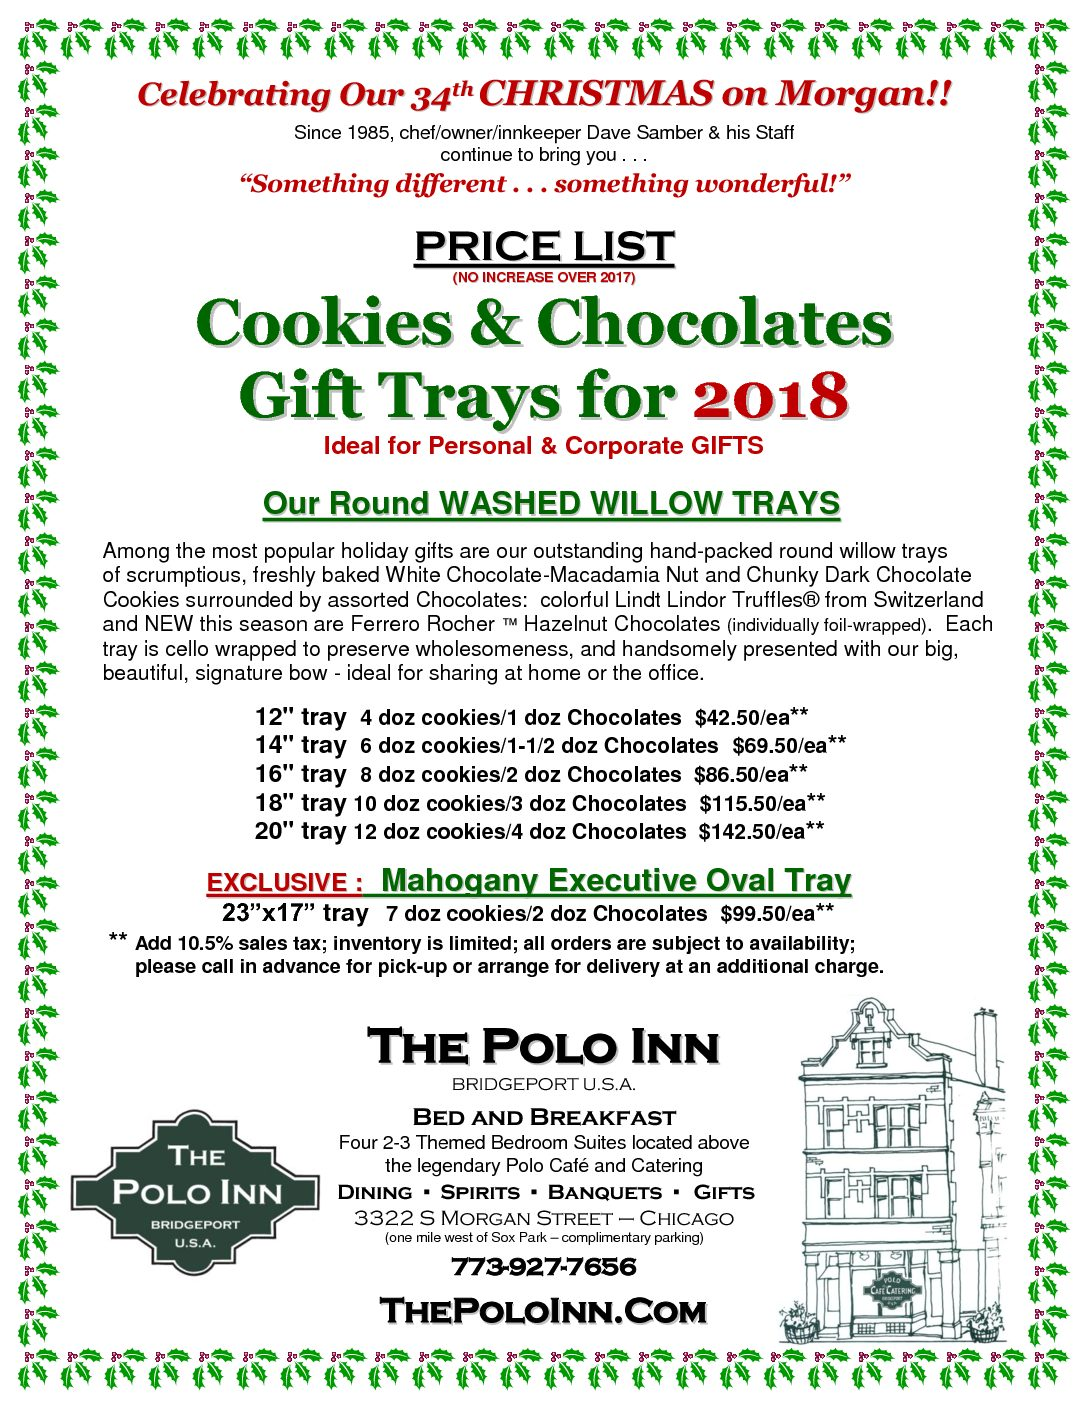 Cookie Tray Price List 2018